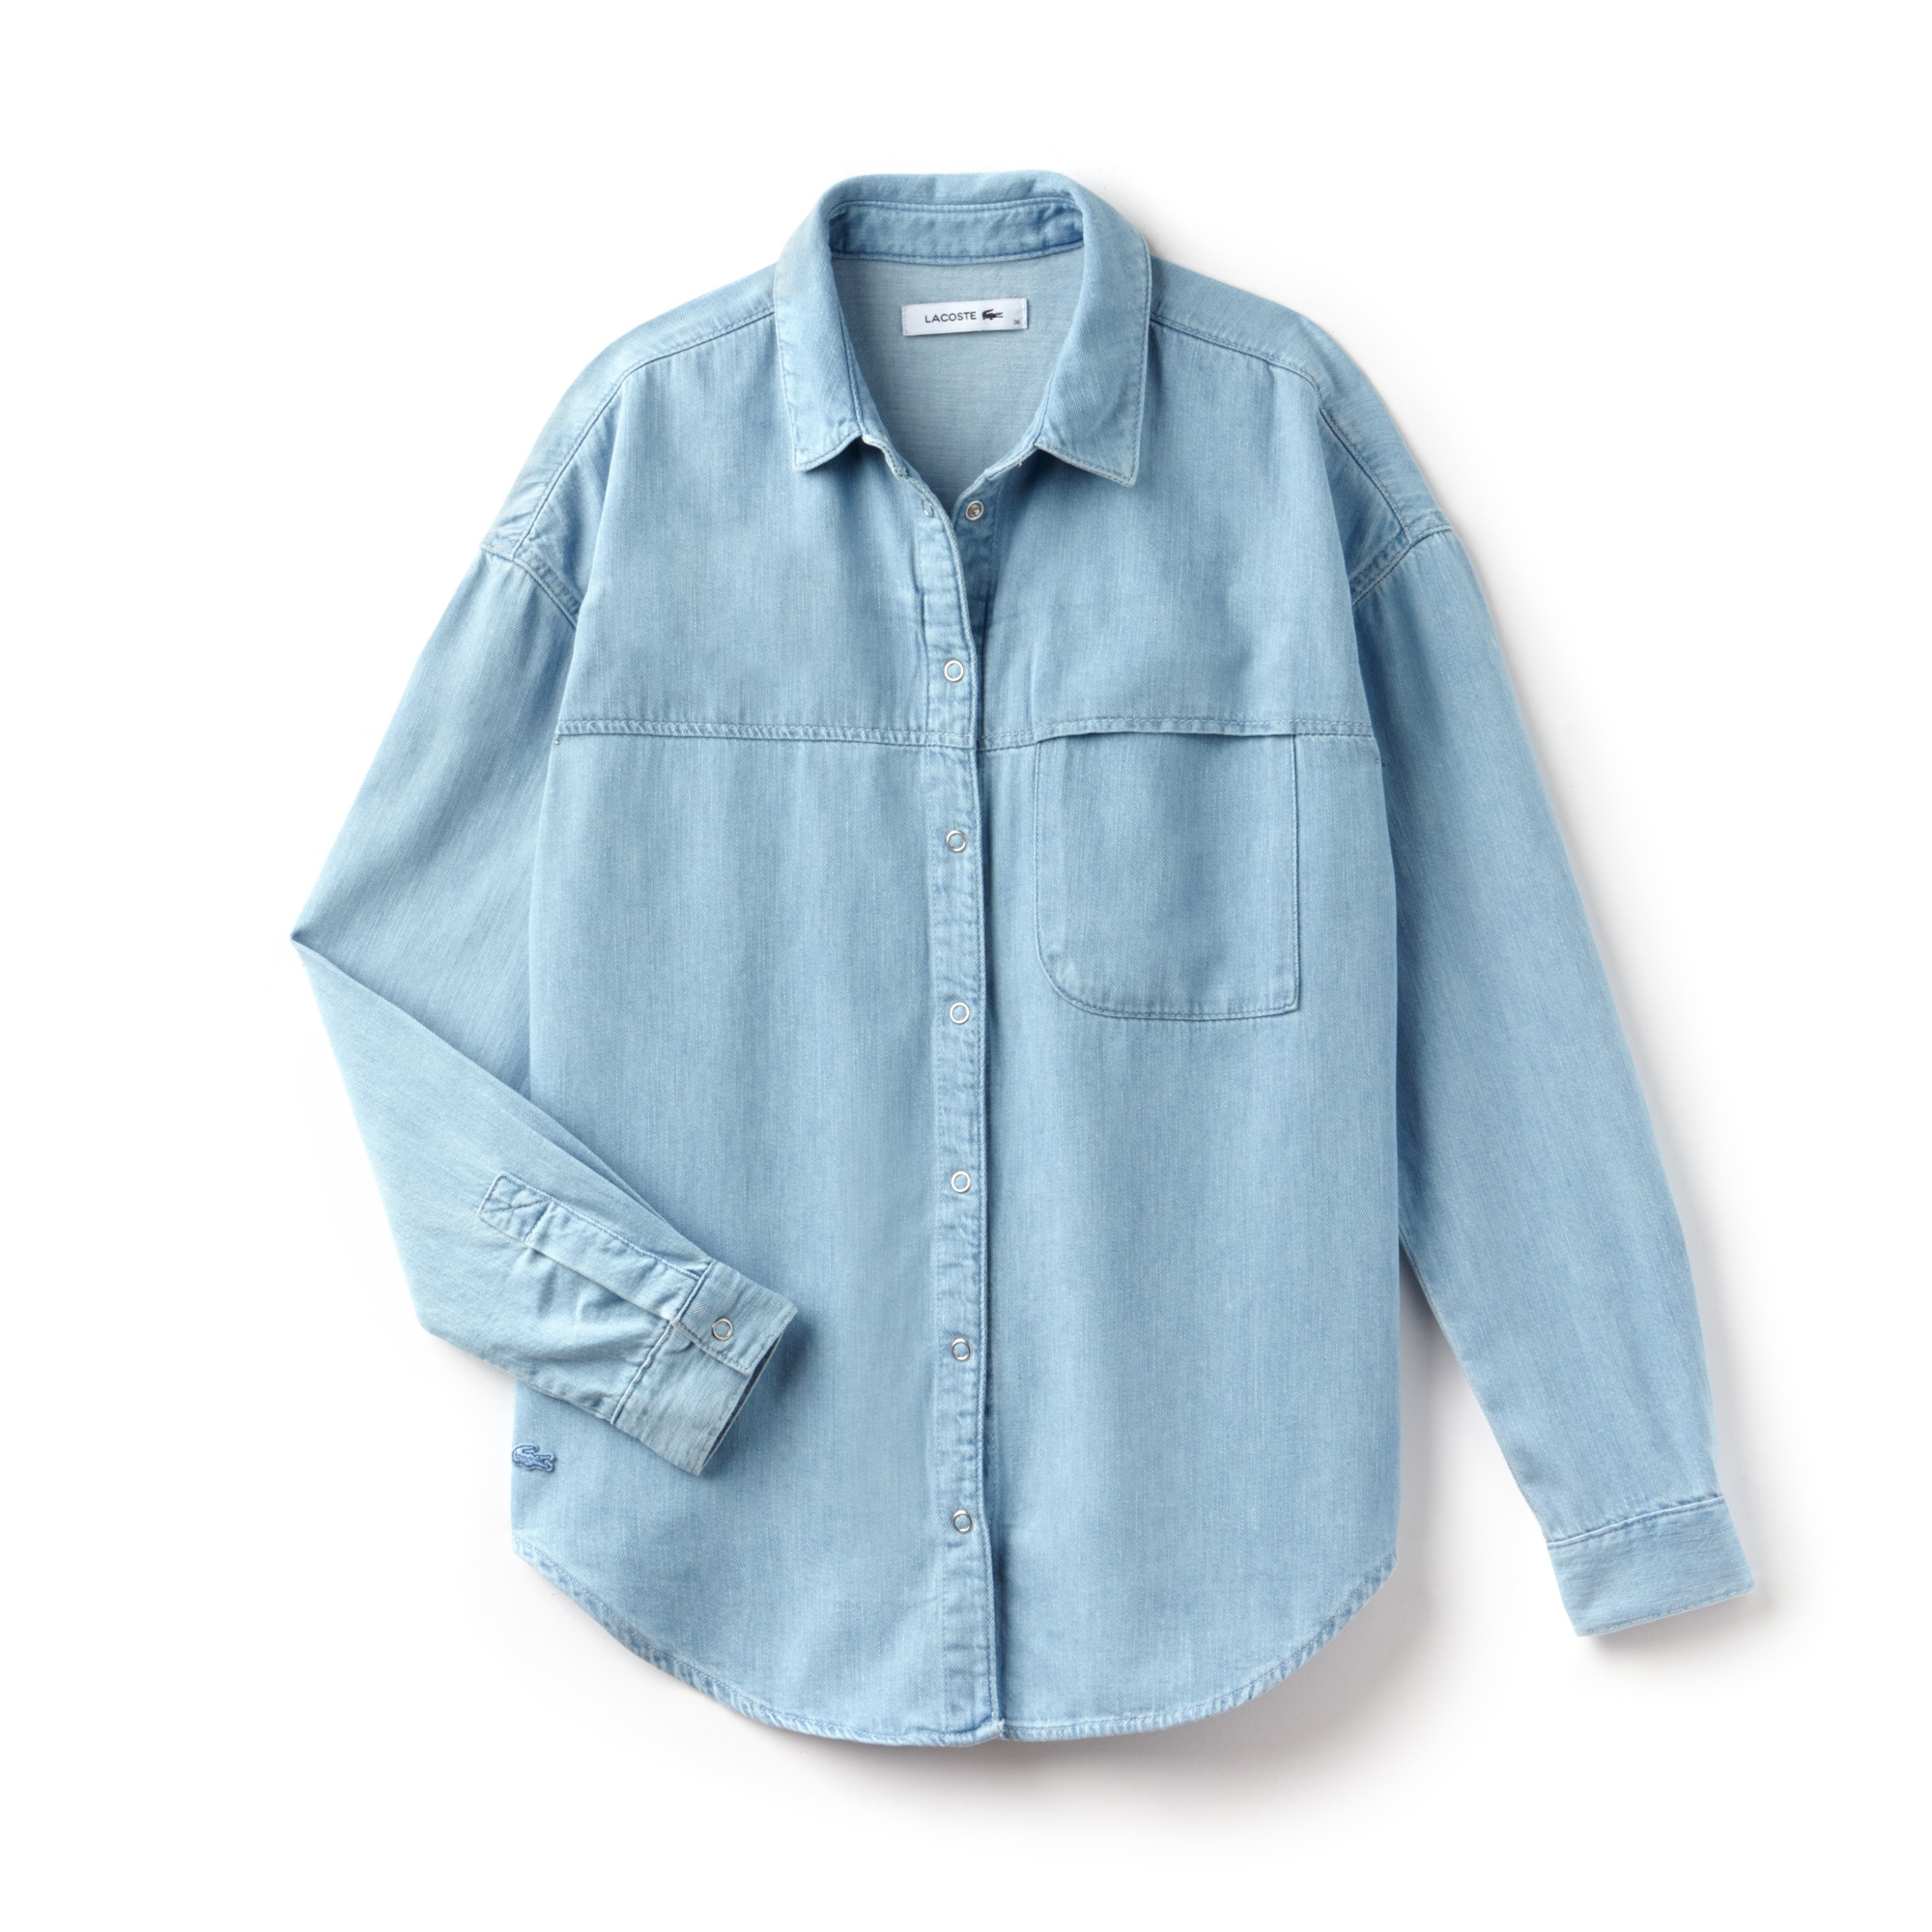 Chemise regular fit en denim de coton